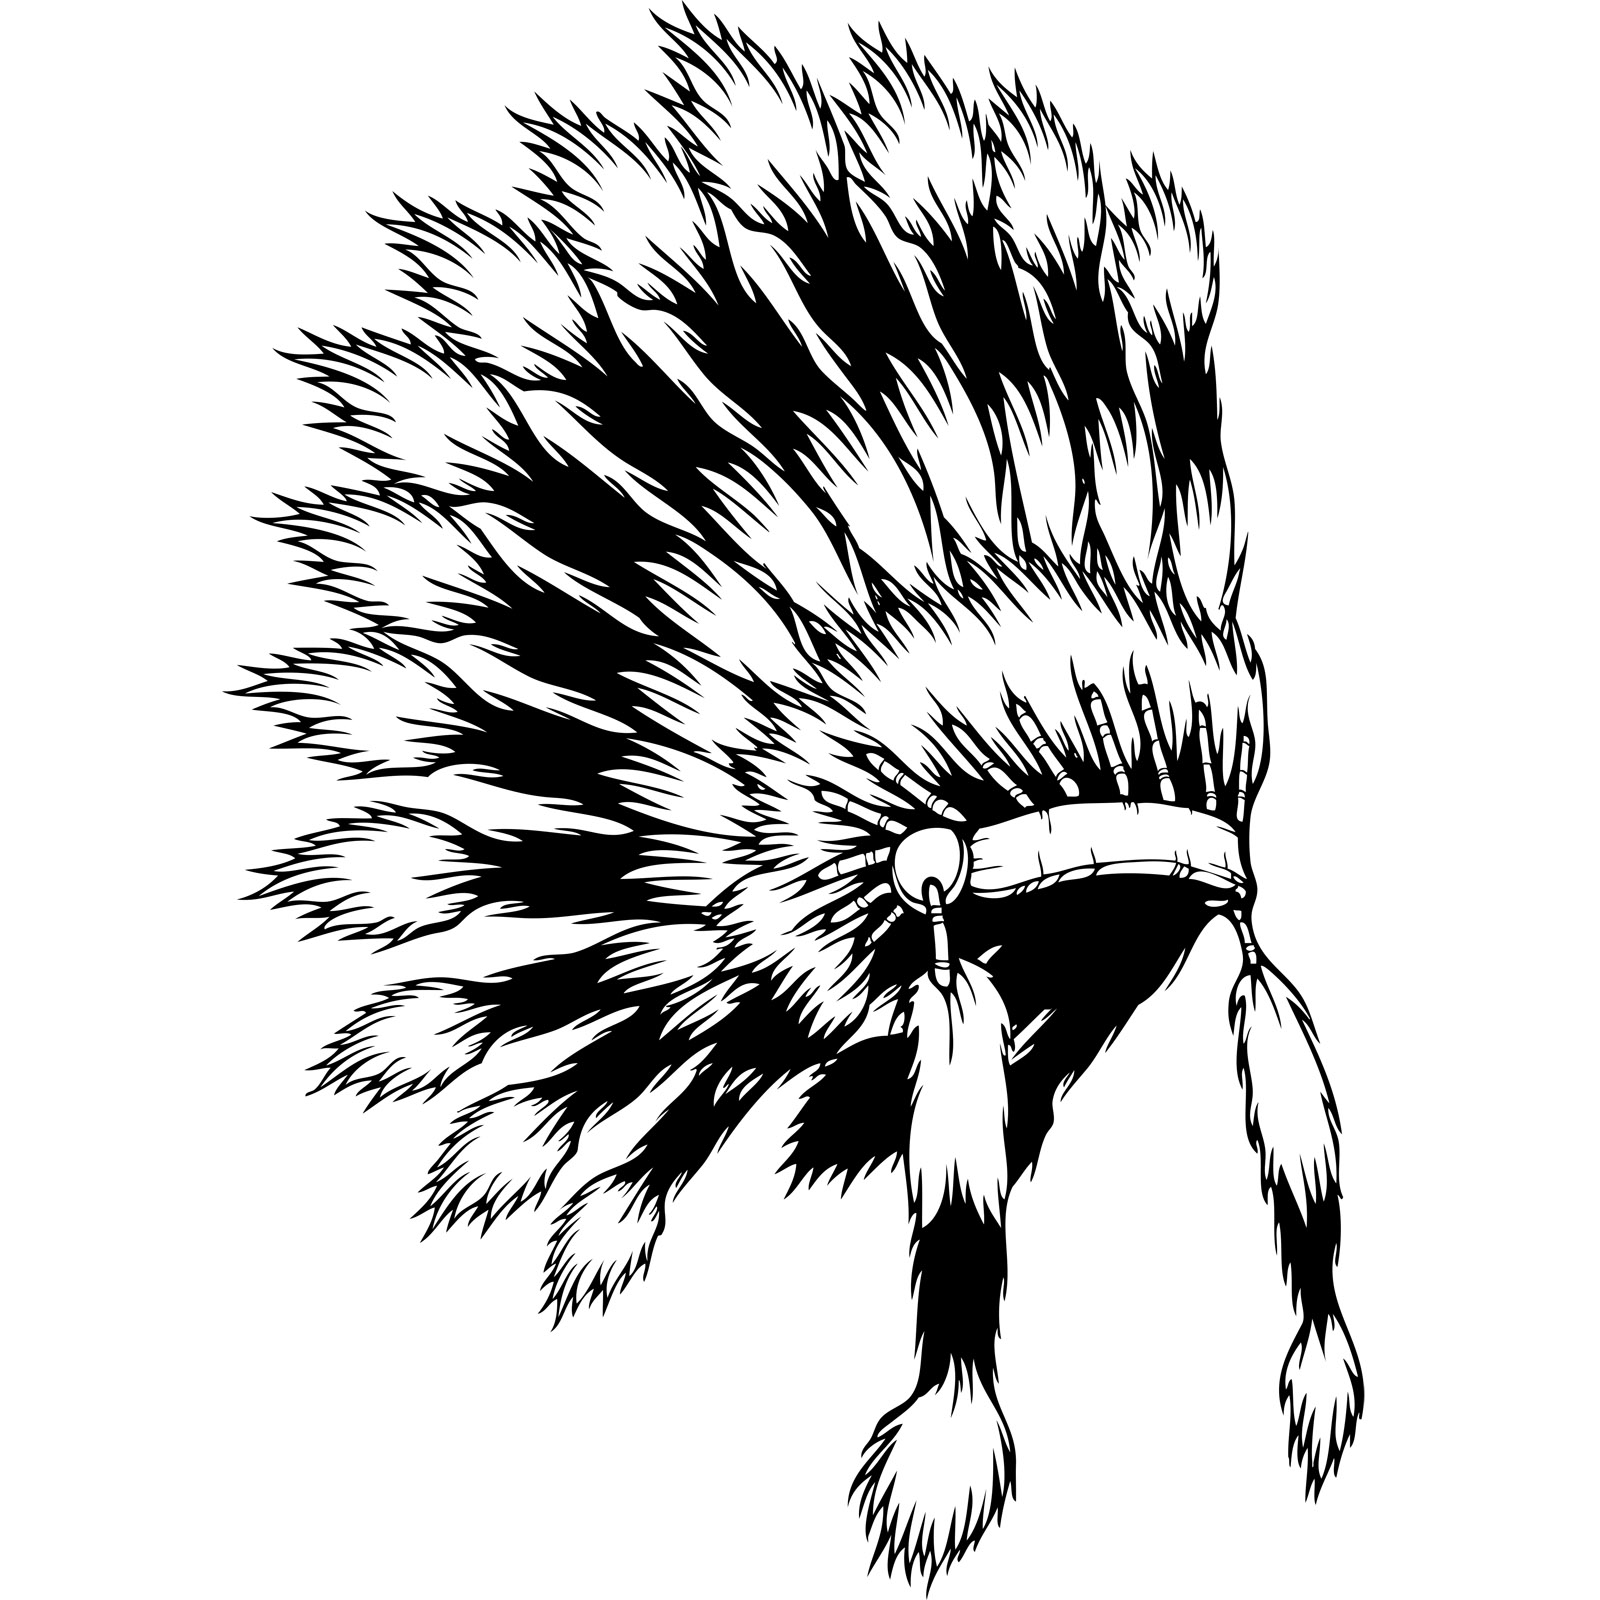 Indian Feathers Drawing at GetDrawings.com | Free for personal use ...